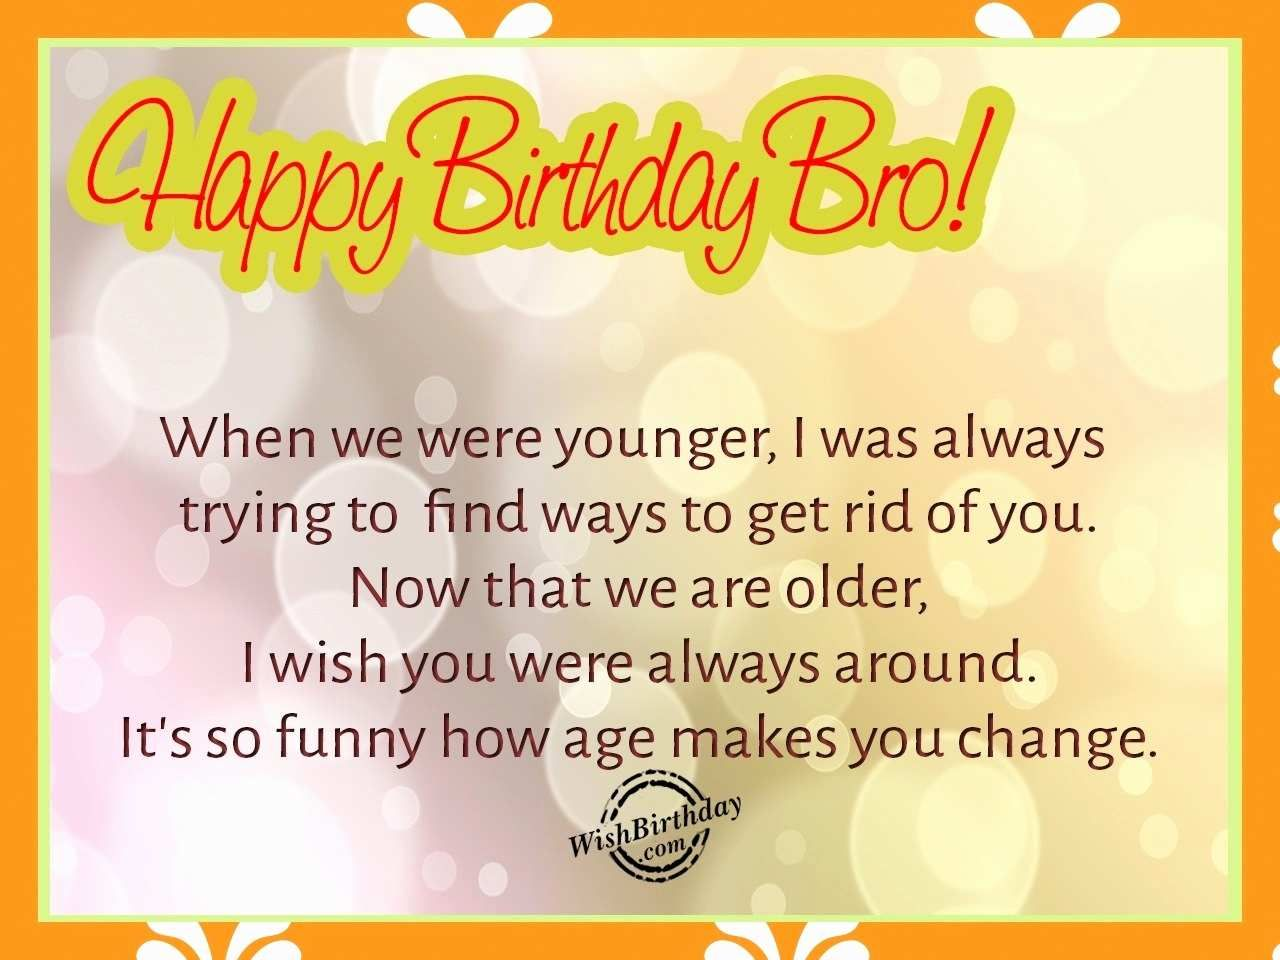 Funny Birthday Wishes For Brother Inspirational Outstanding Happy Birthday Wishes For Brother Brother Birthday Quotes Wishes For Brother